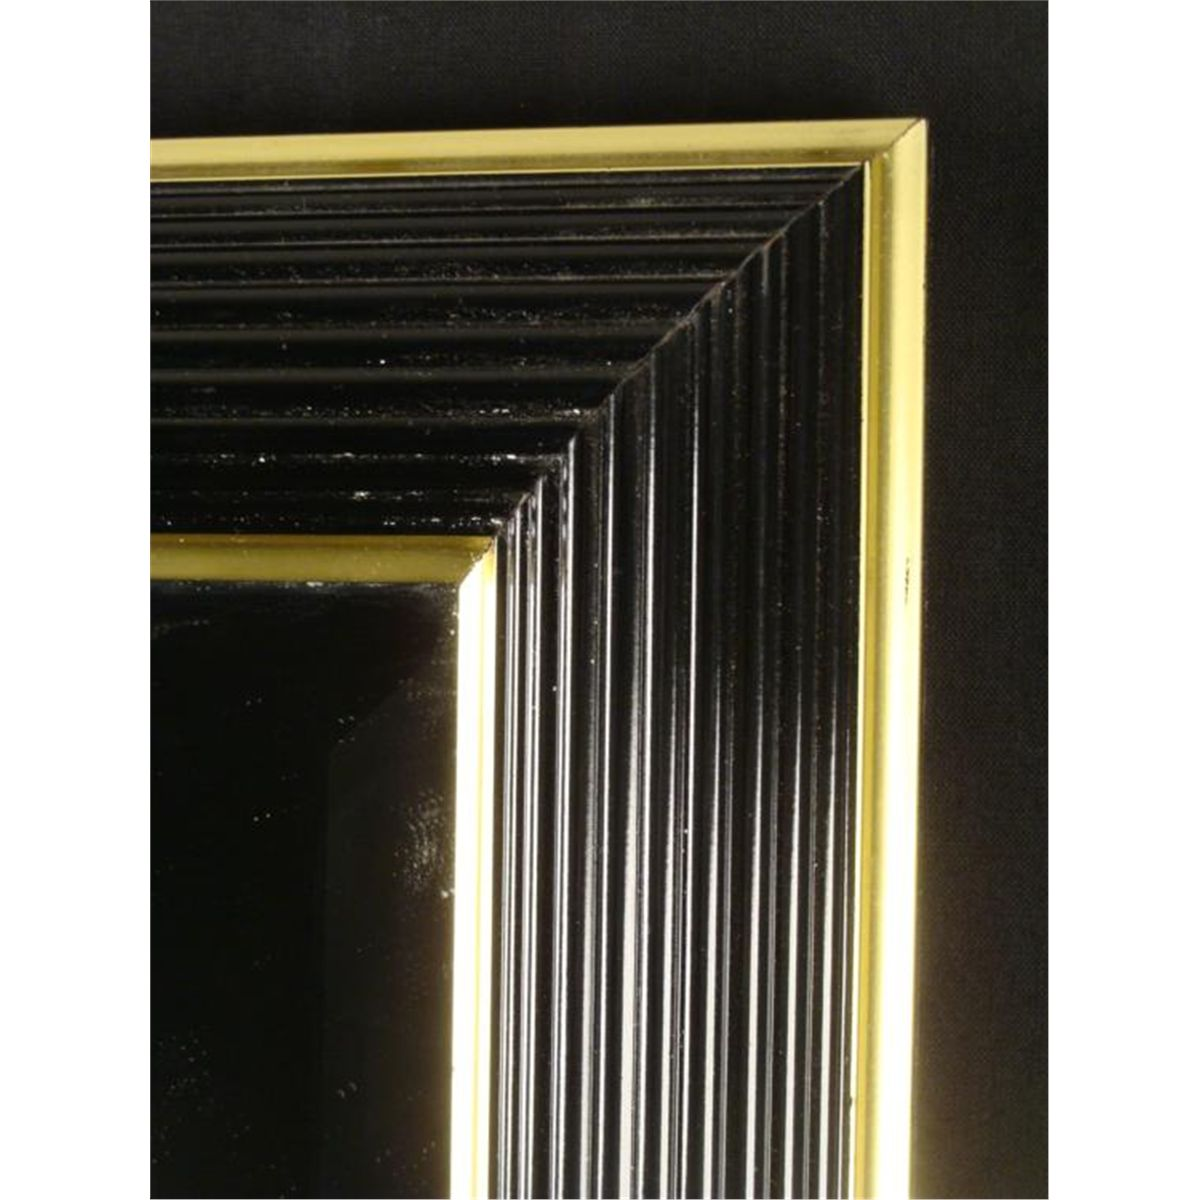 Bombay company 24x30 black gold art deco wall mirror amipublicfo Image collections